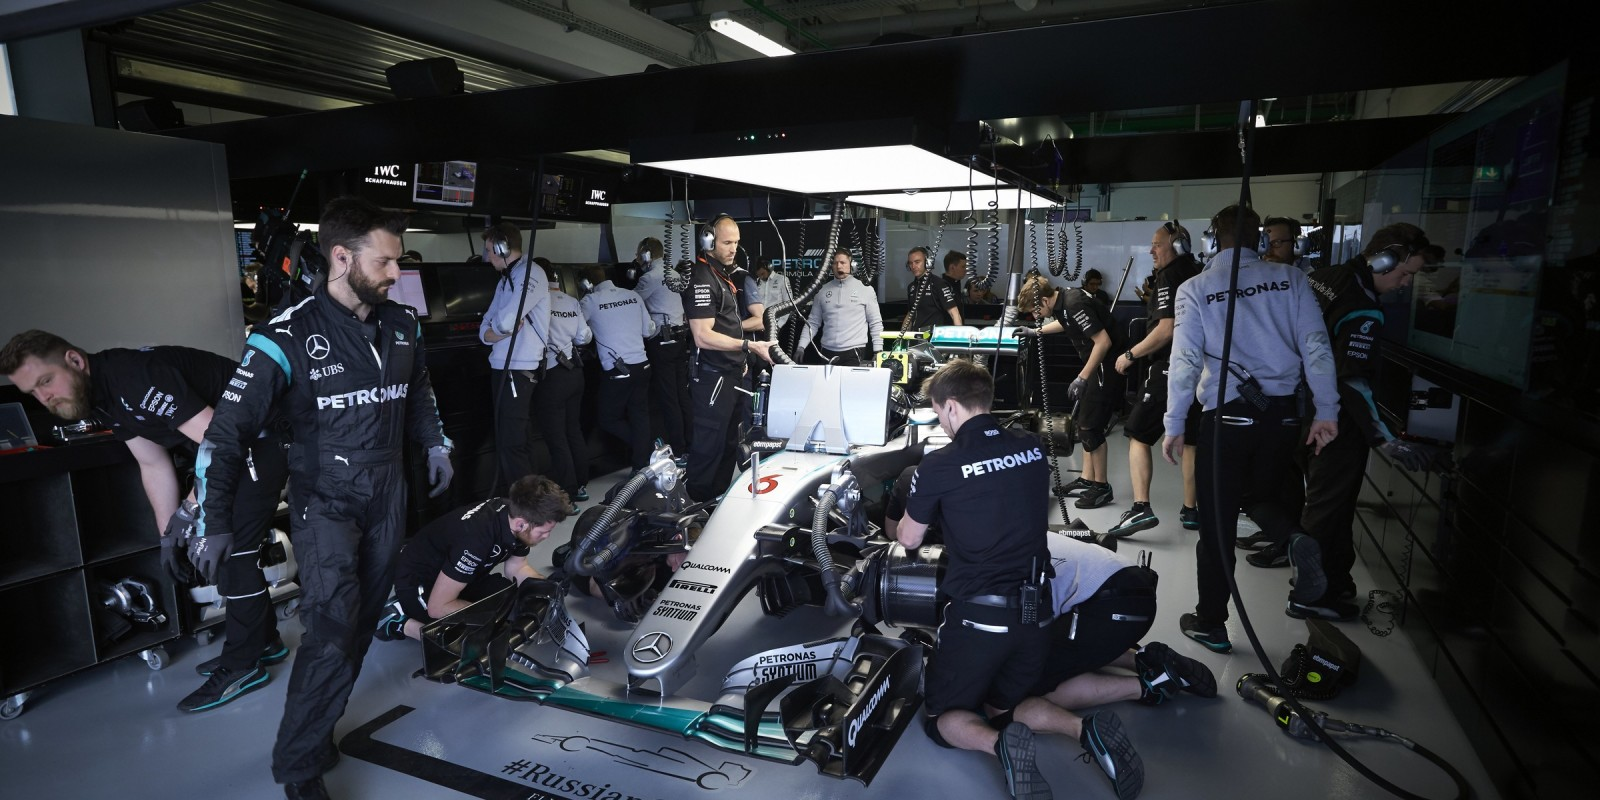 Saturday Qualifying images from the 2016 Russian Grand Prix in Sochi